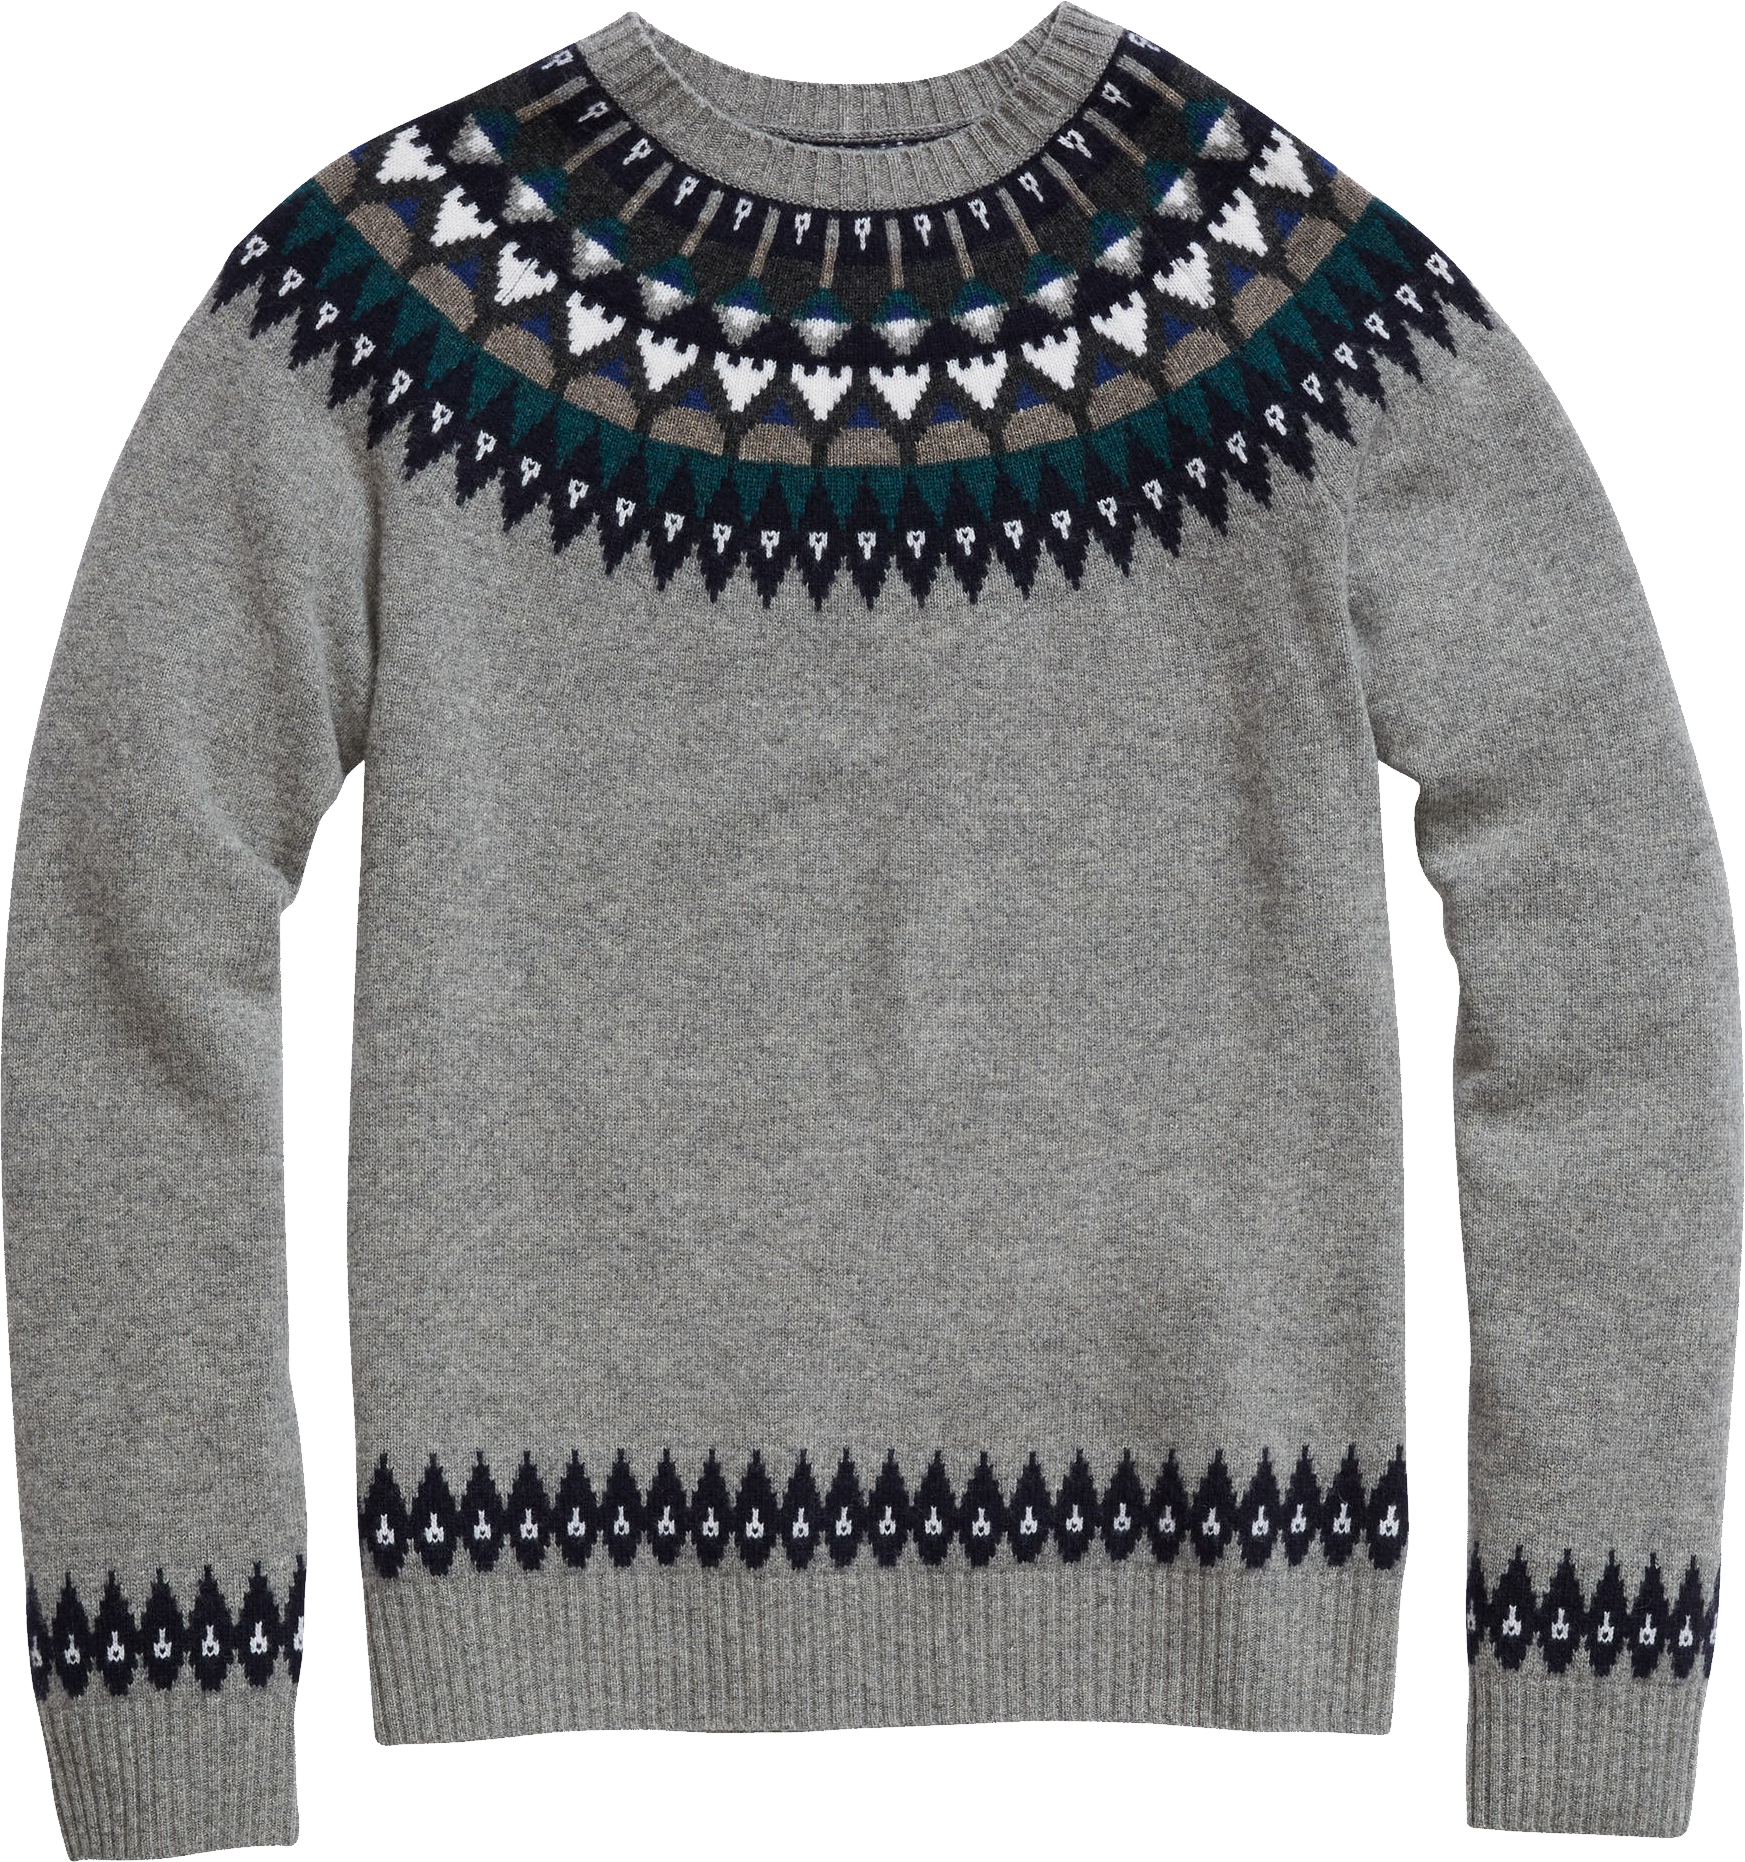 Sweater PNG images free download.